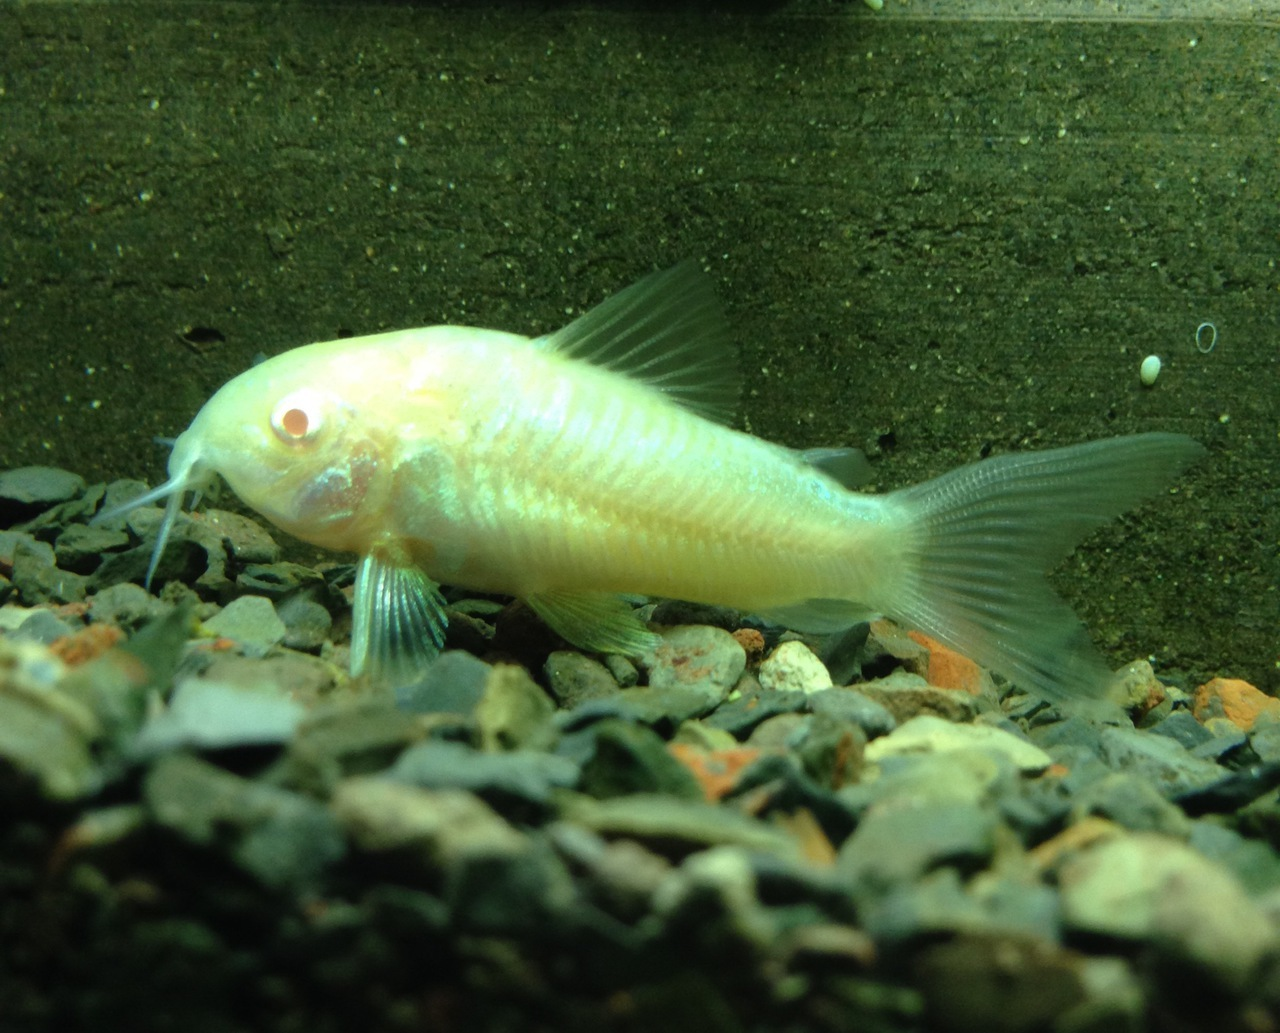 Albino corydoras cory catfish live freshwater aquarium for Big freshwater aquarium fish